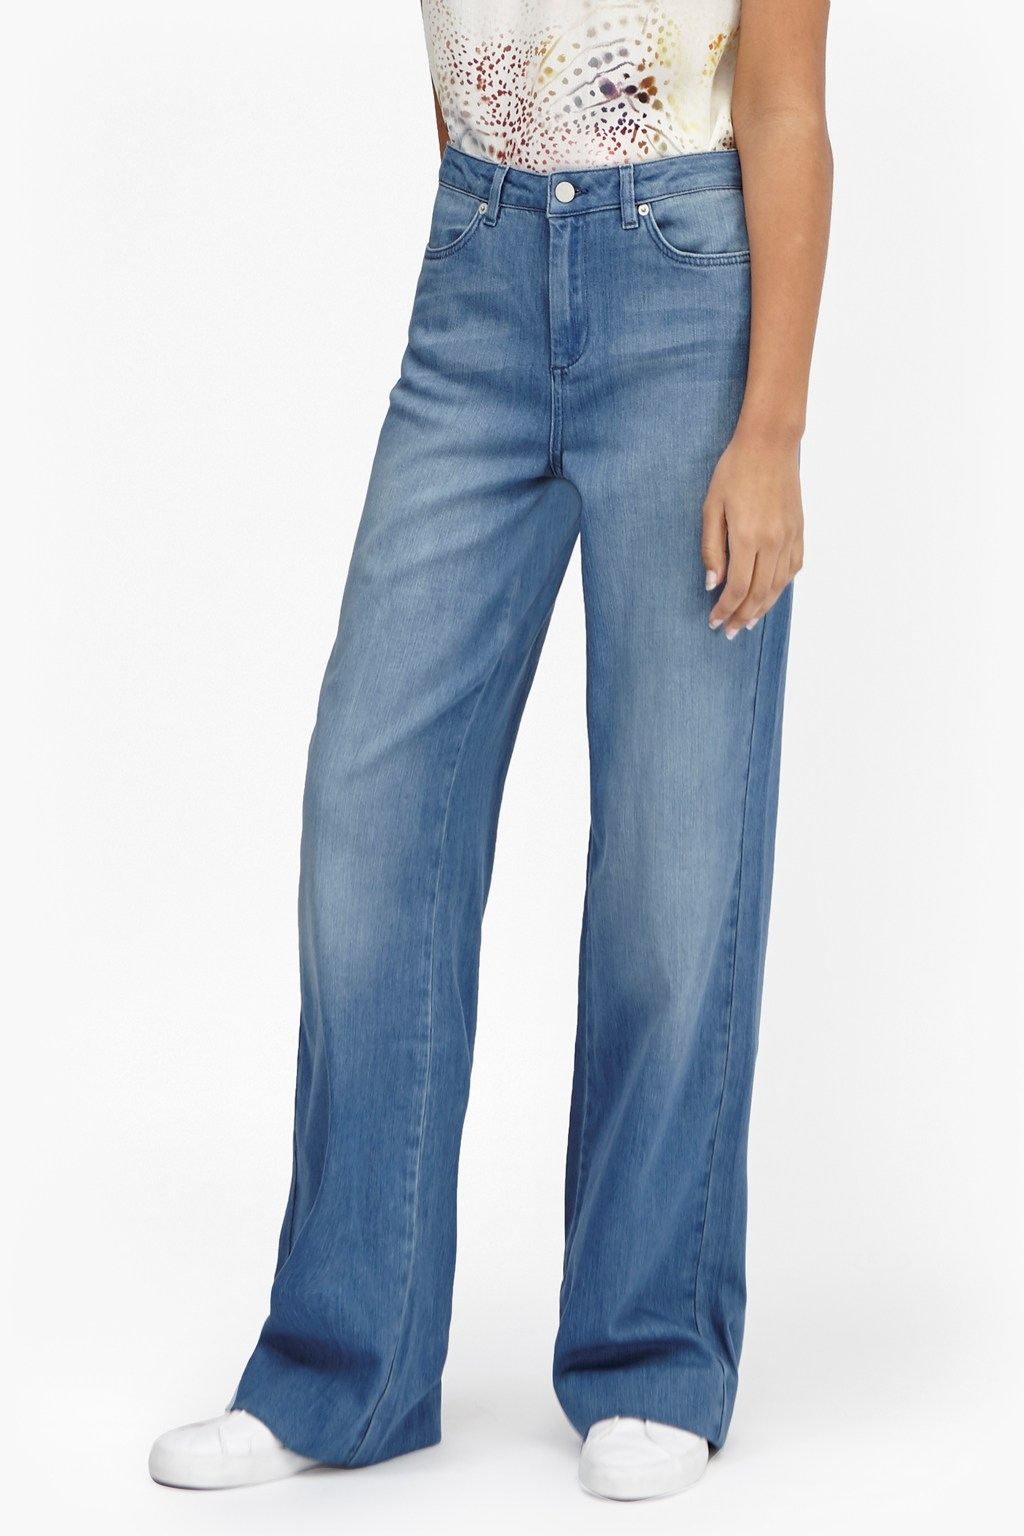 Cushie Vintage Wide Leg Jeans | Sale | French Connection Usa